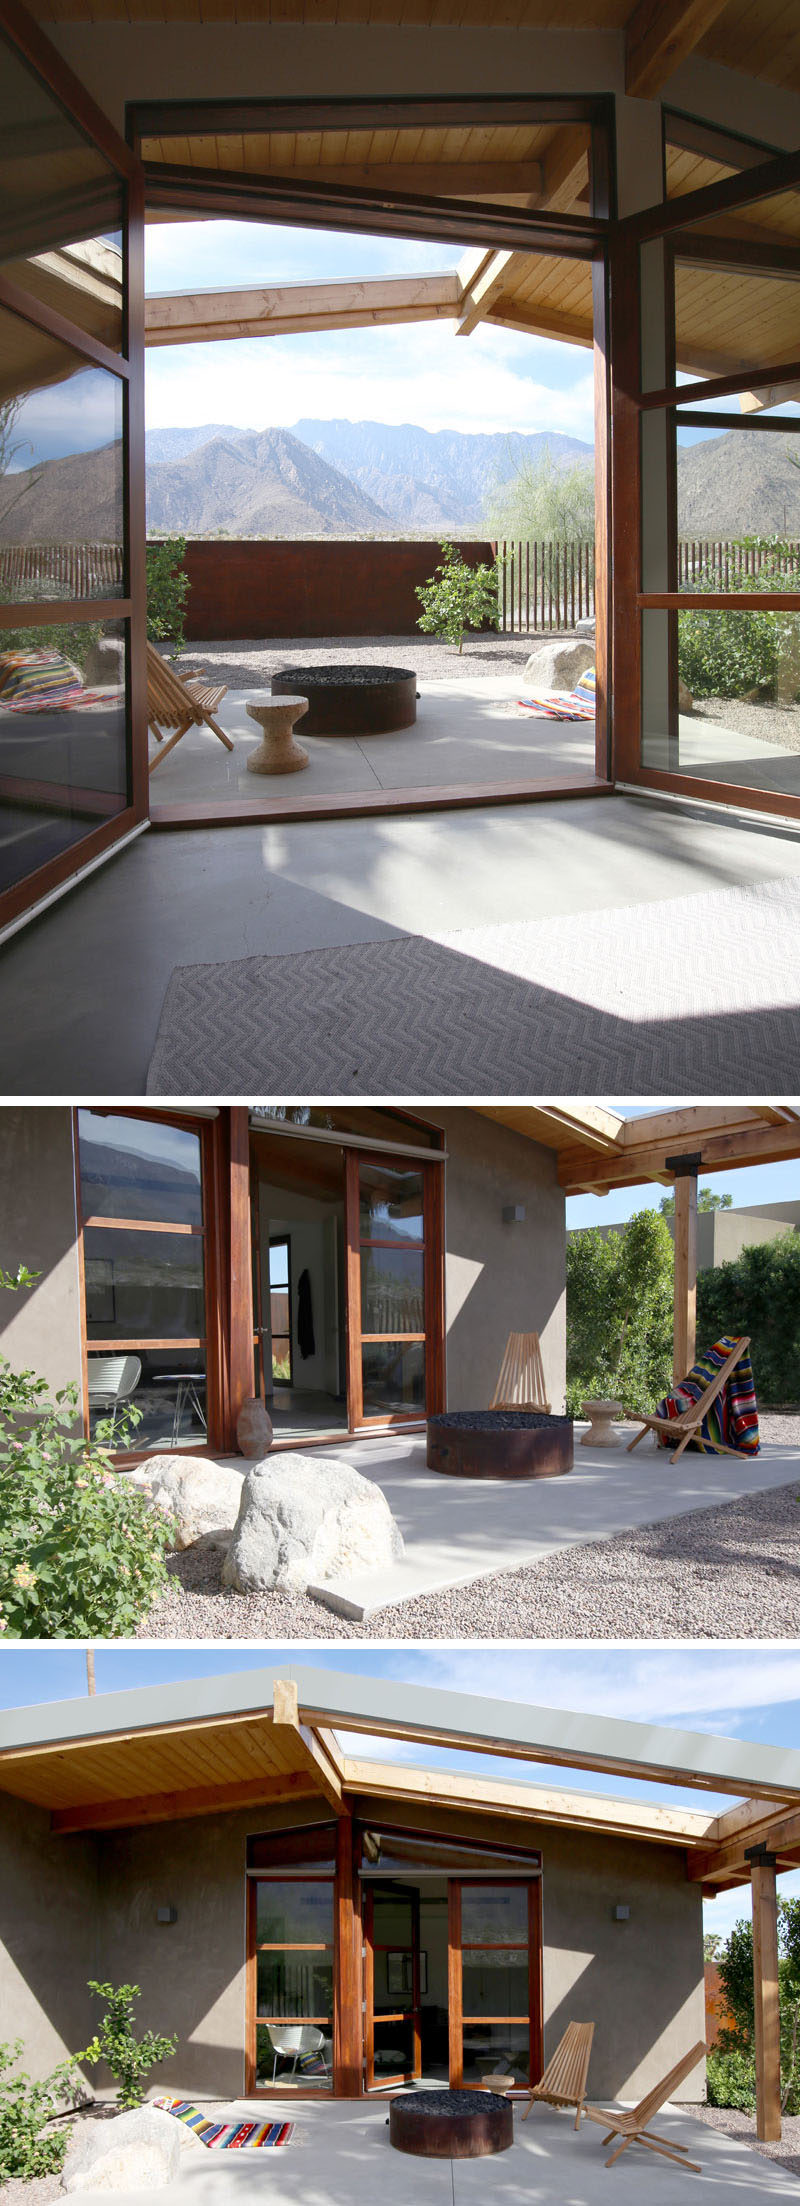 The master bedroom in this house opens up to a private patio with a firepit and small garden. #patio #garden #landscaping